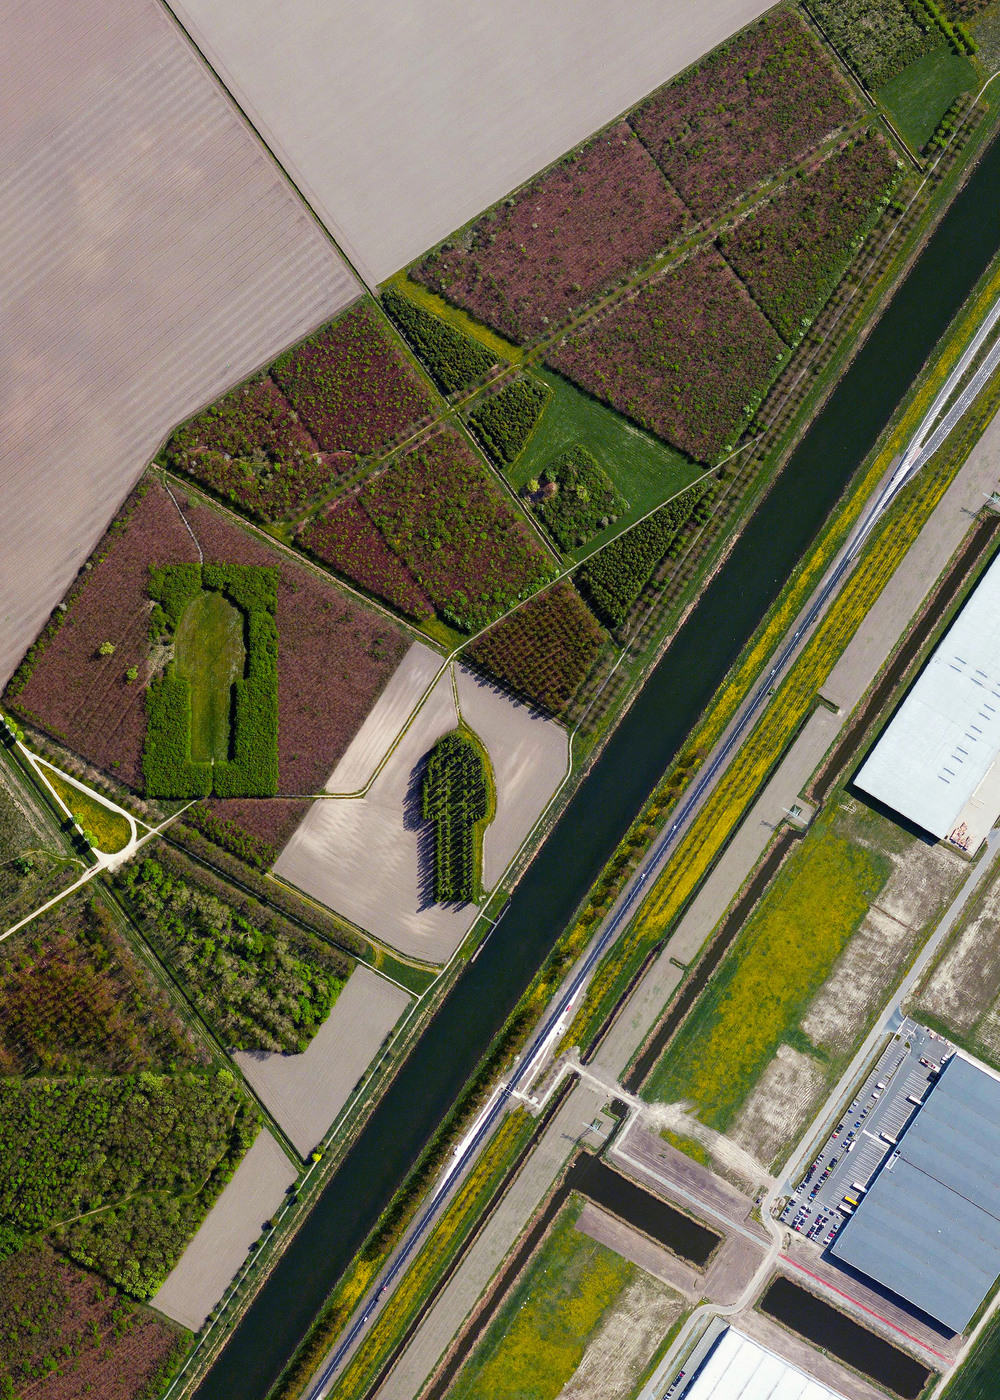 "11/7/2015   The Green Cathedral   Almere, Netherlands   52.323157°N 5.318778°E      Look closely at this Overview and you'll see ""The Green Cathedral"" - an artistic planting of 178 Lombardy poplar trees near Almere, Netherlands. The ""Cathedral"" is 50 m (490 ft) long and 75 m (246 ft) wide, which mimics the exact size and shape of the Cathedral of Notre-Dame in Reims, France. The artist, Marinus Boezem, also made a clearing in a nearby beech forest of the same shape to suggest that as the poplars decline, beech trees will fill the empty space to symbolize a cycle of growth and decline."